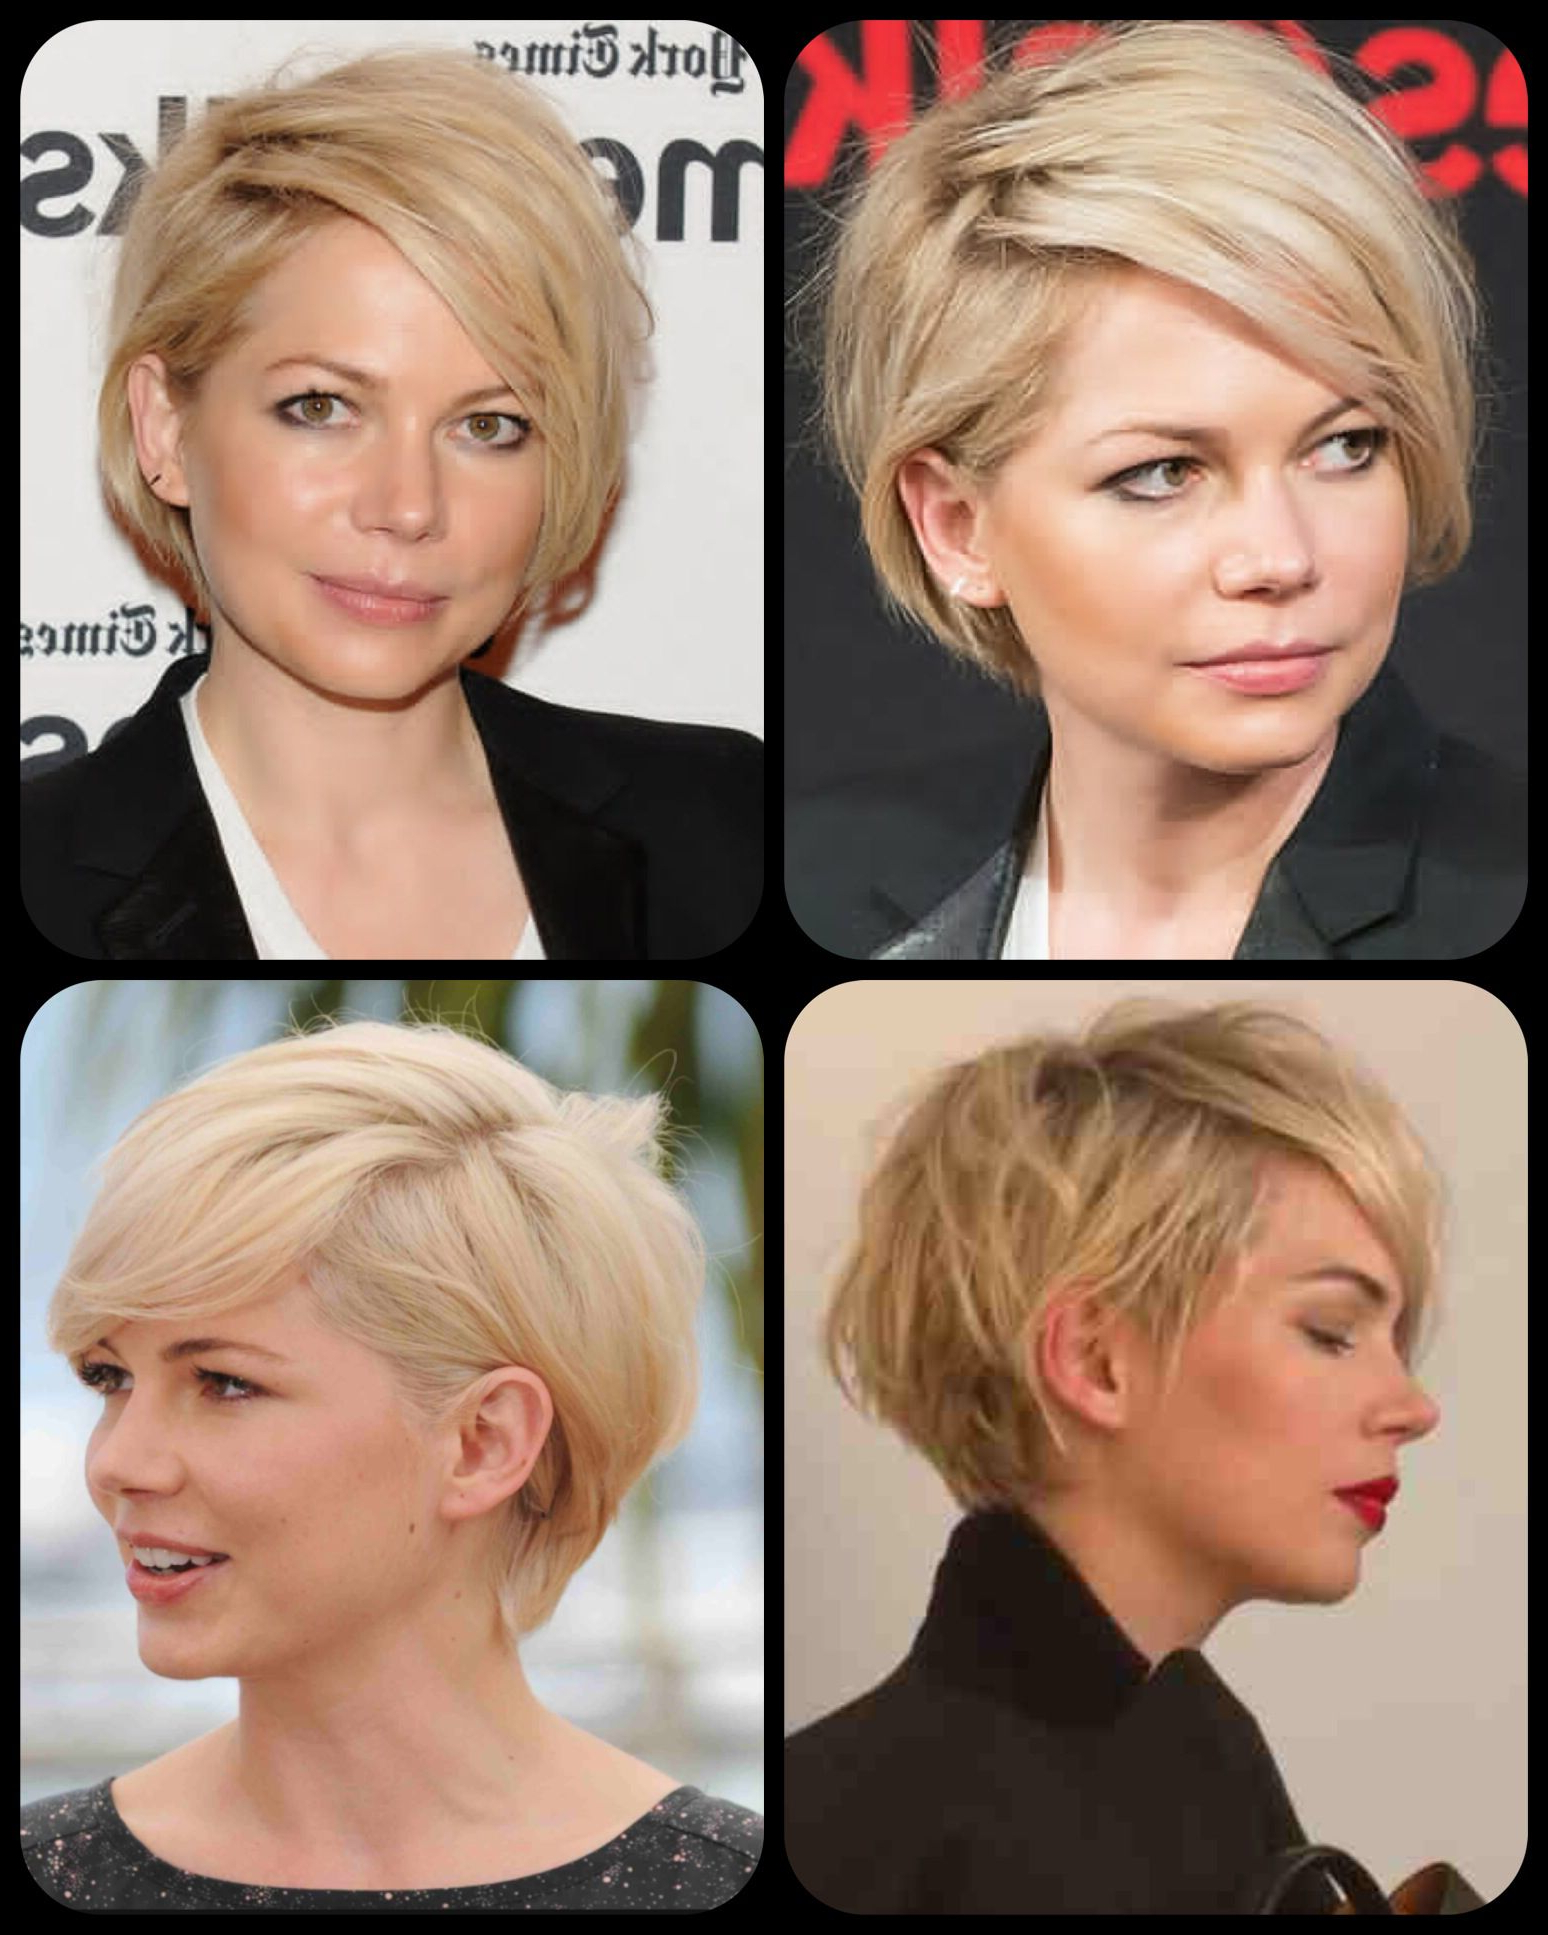 Michelle Williams' Grown Out Pixie Cut | Hair | Pinterest | Hair Regarding Short Hairstyles For Growing Out A Pixie Cut (View 4 of 25)